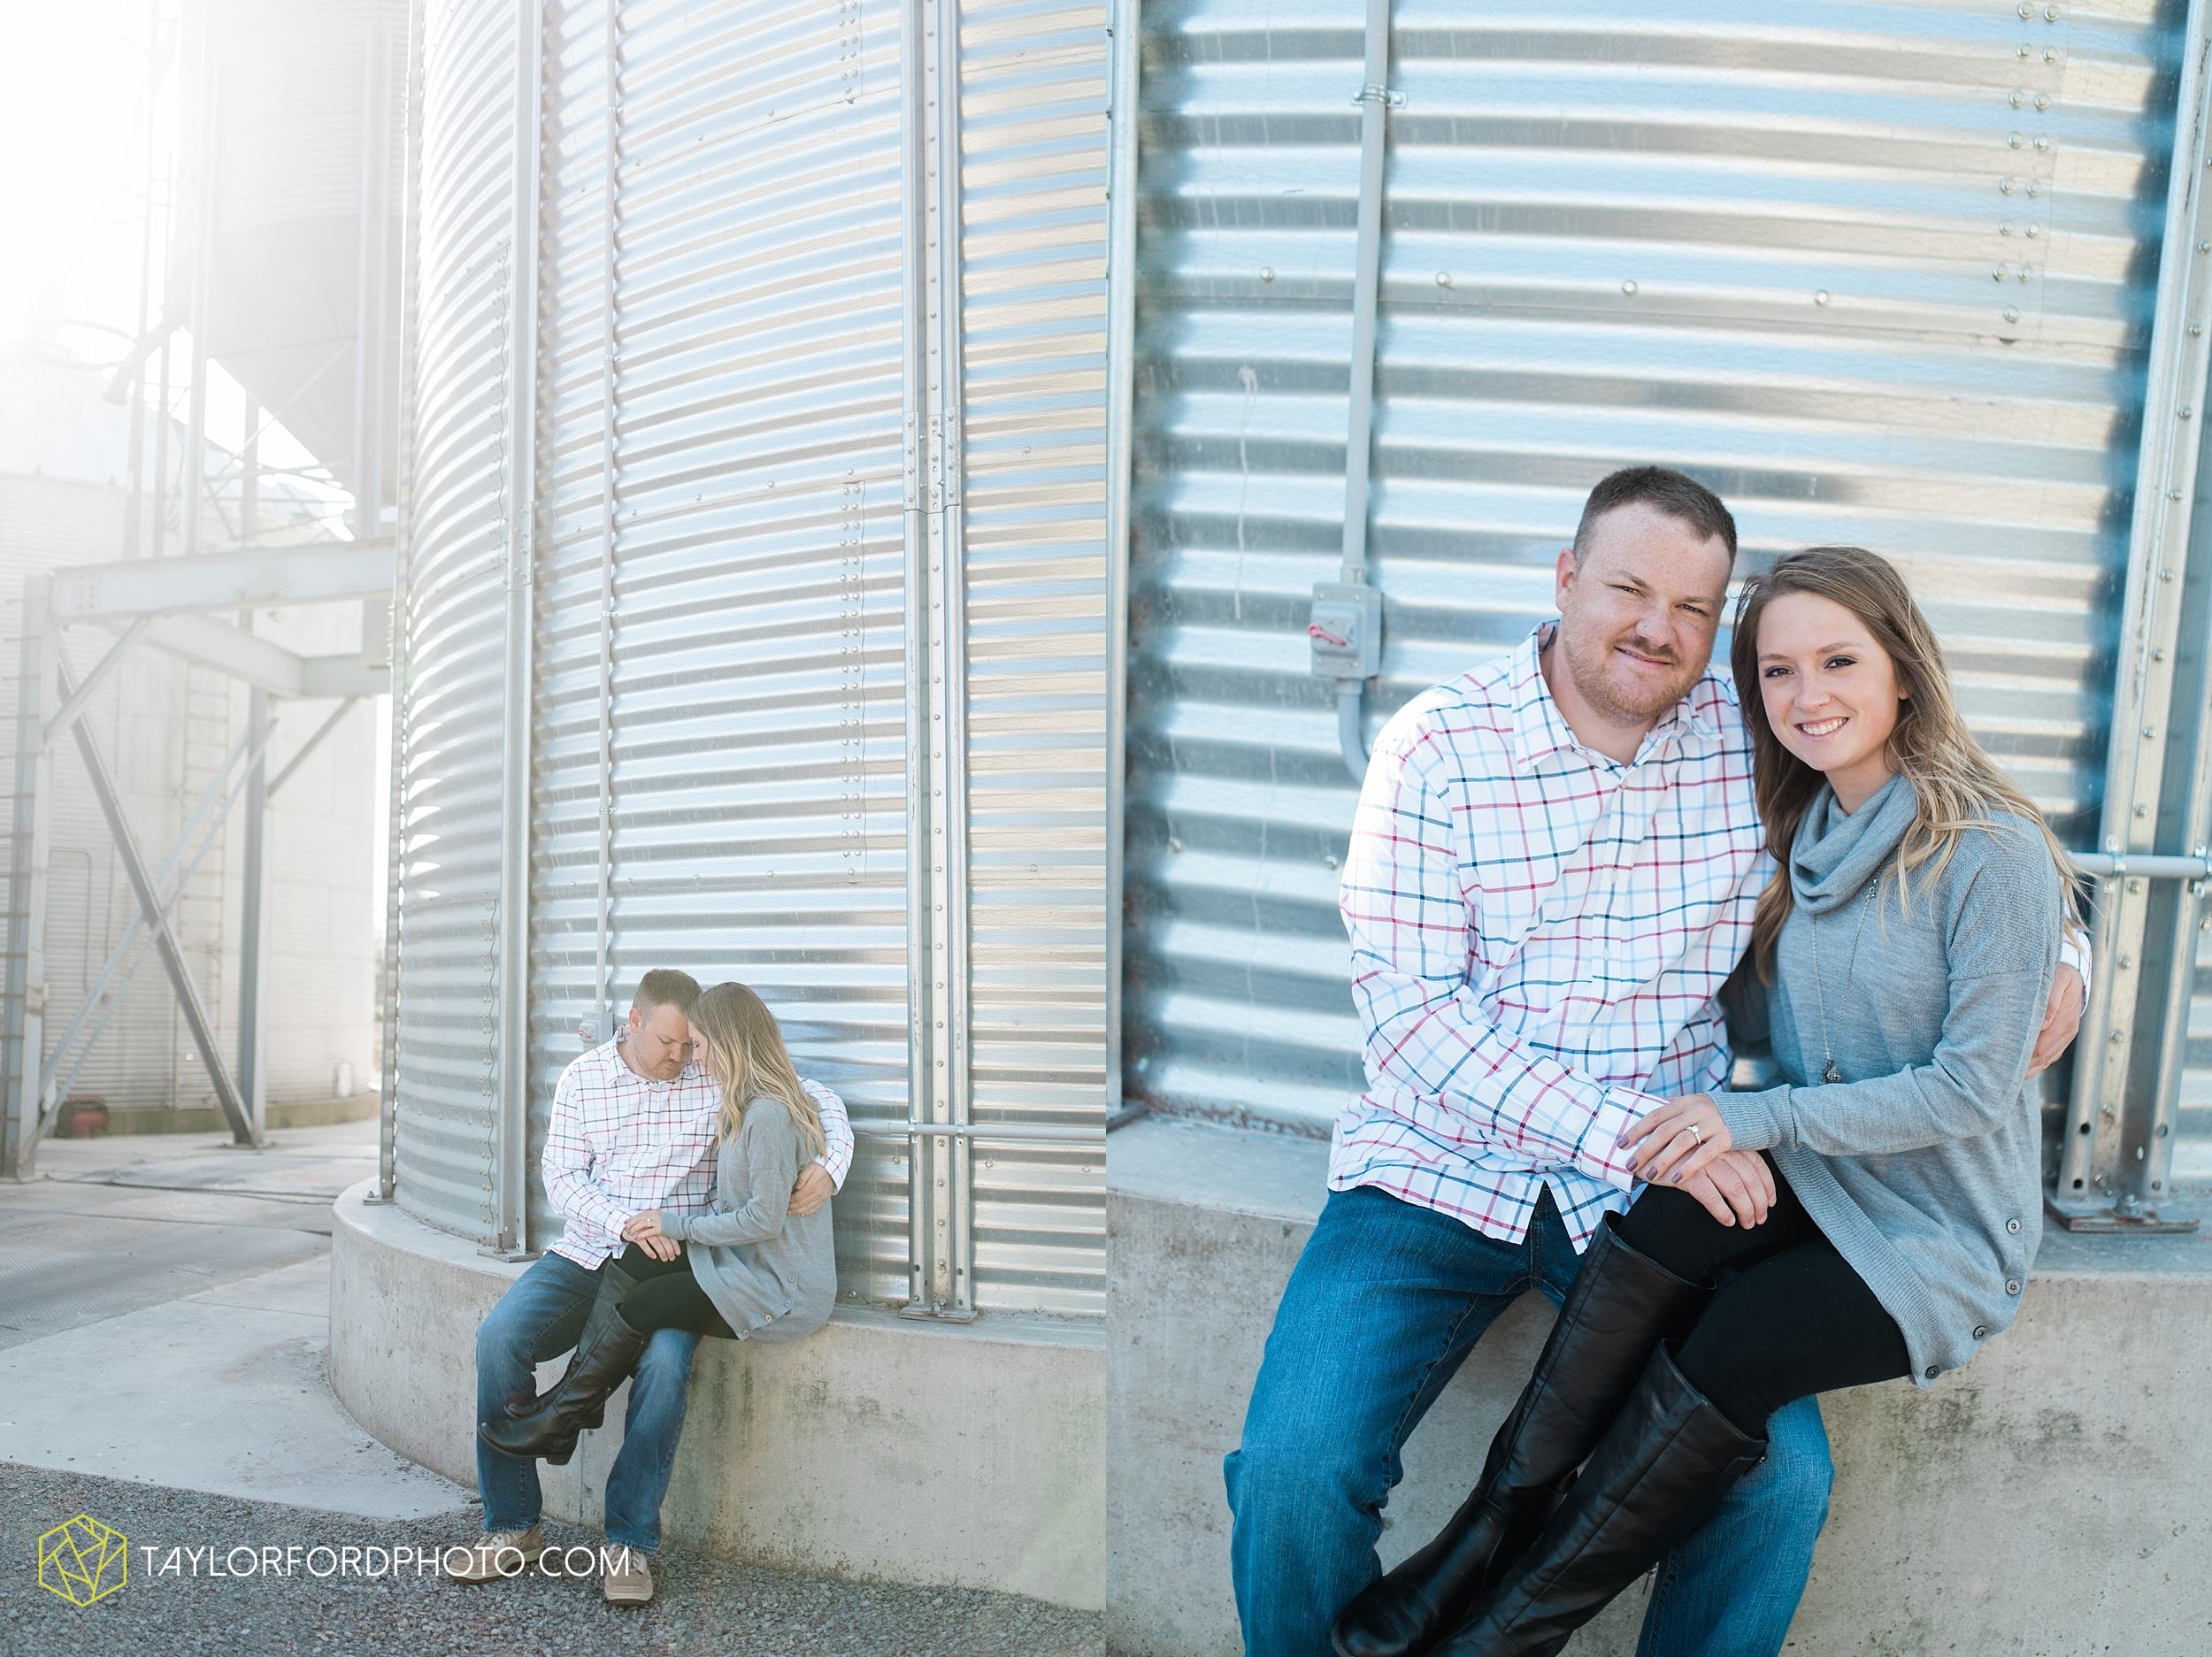 van-wert-ohio-engagement-wedding-photographer-Taylor-Ford-Photography-fall-farm-nature_4081.jpg